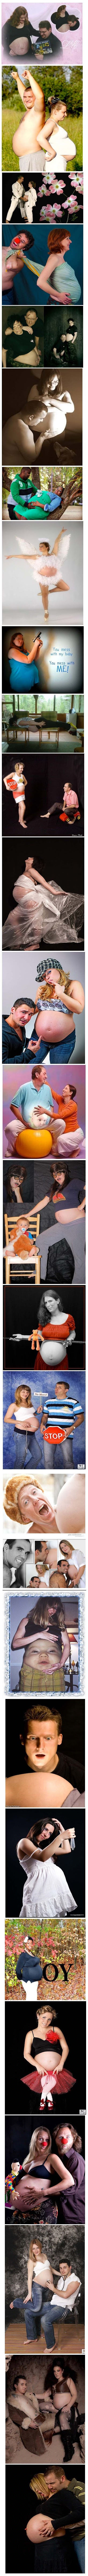 Funny Crazy Pregnancy Photos Picture Strip